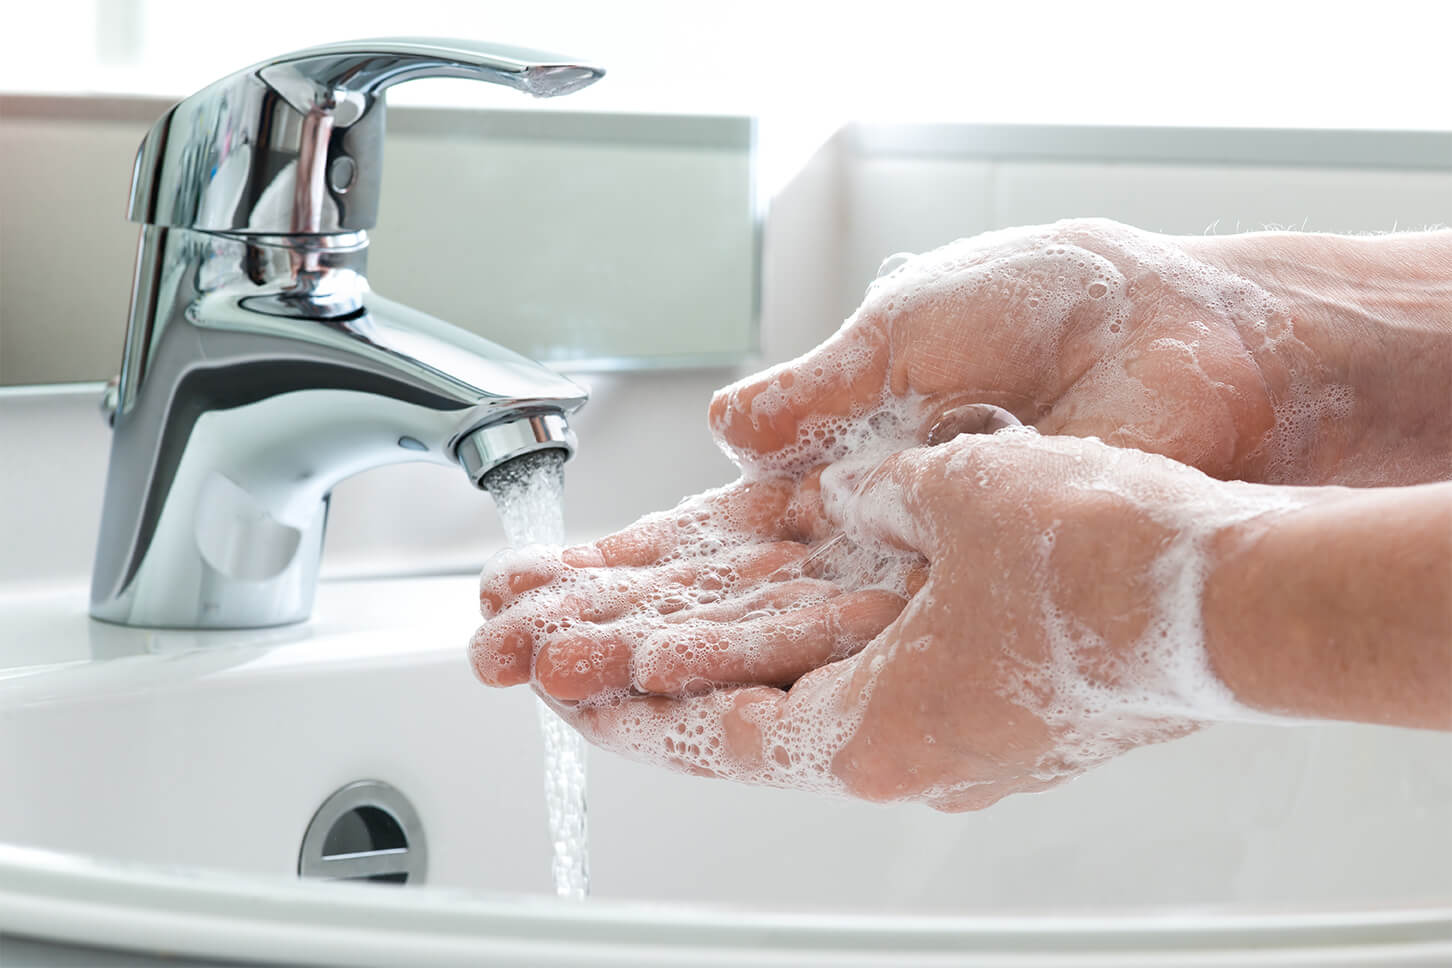 hands being washed with soap under a running tap